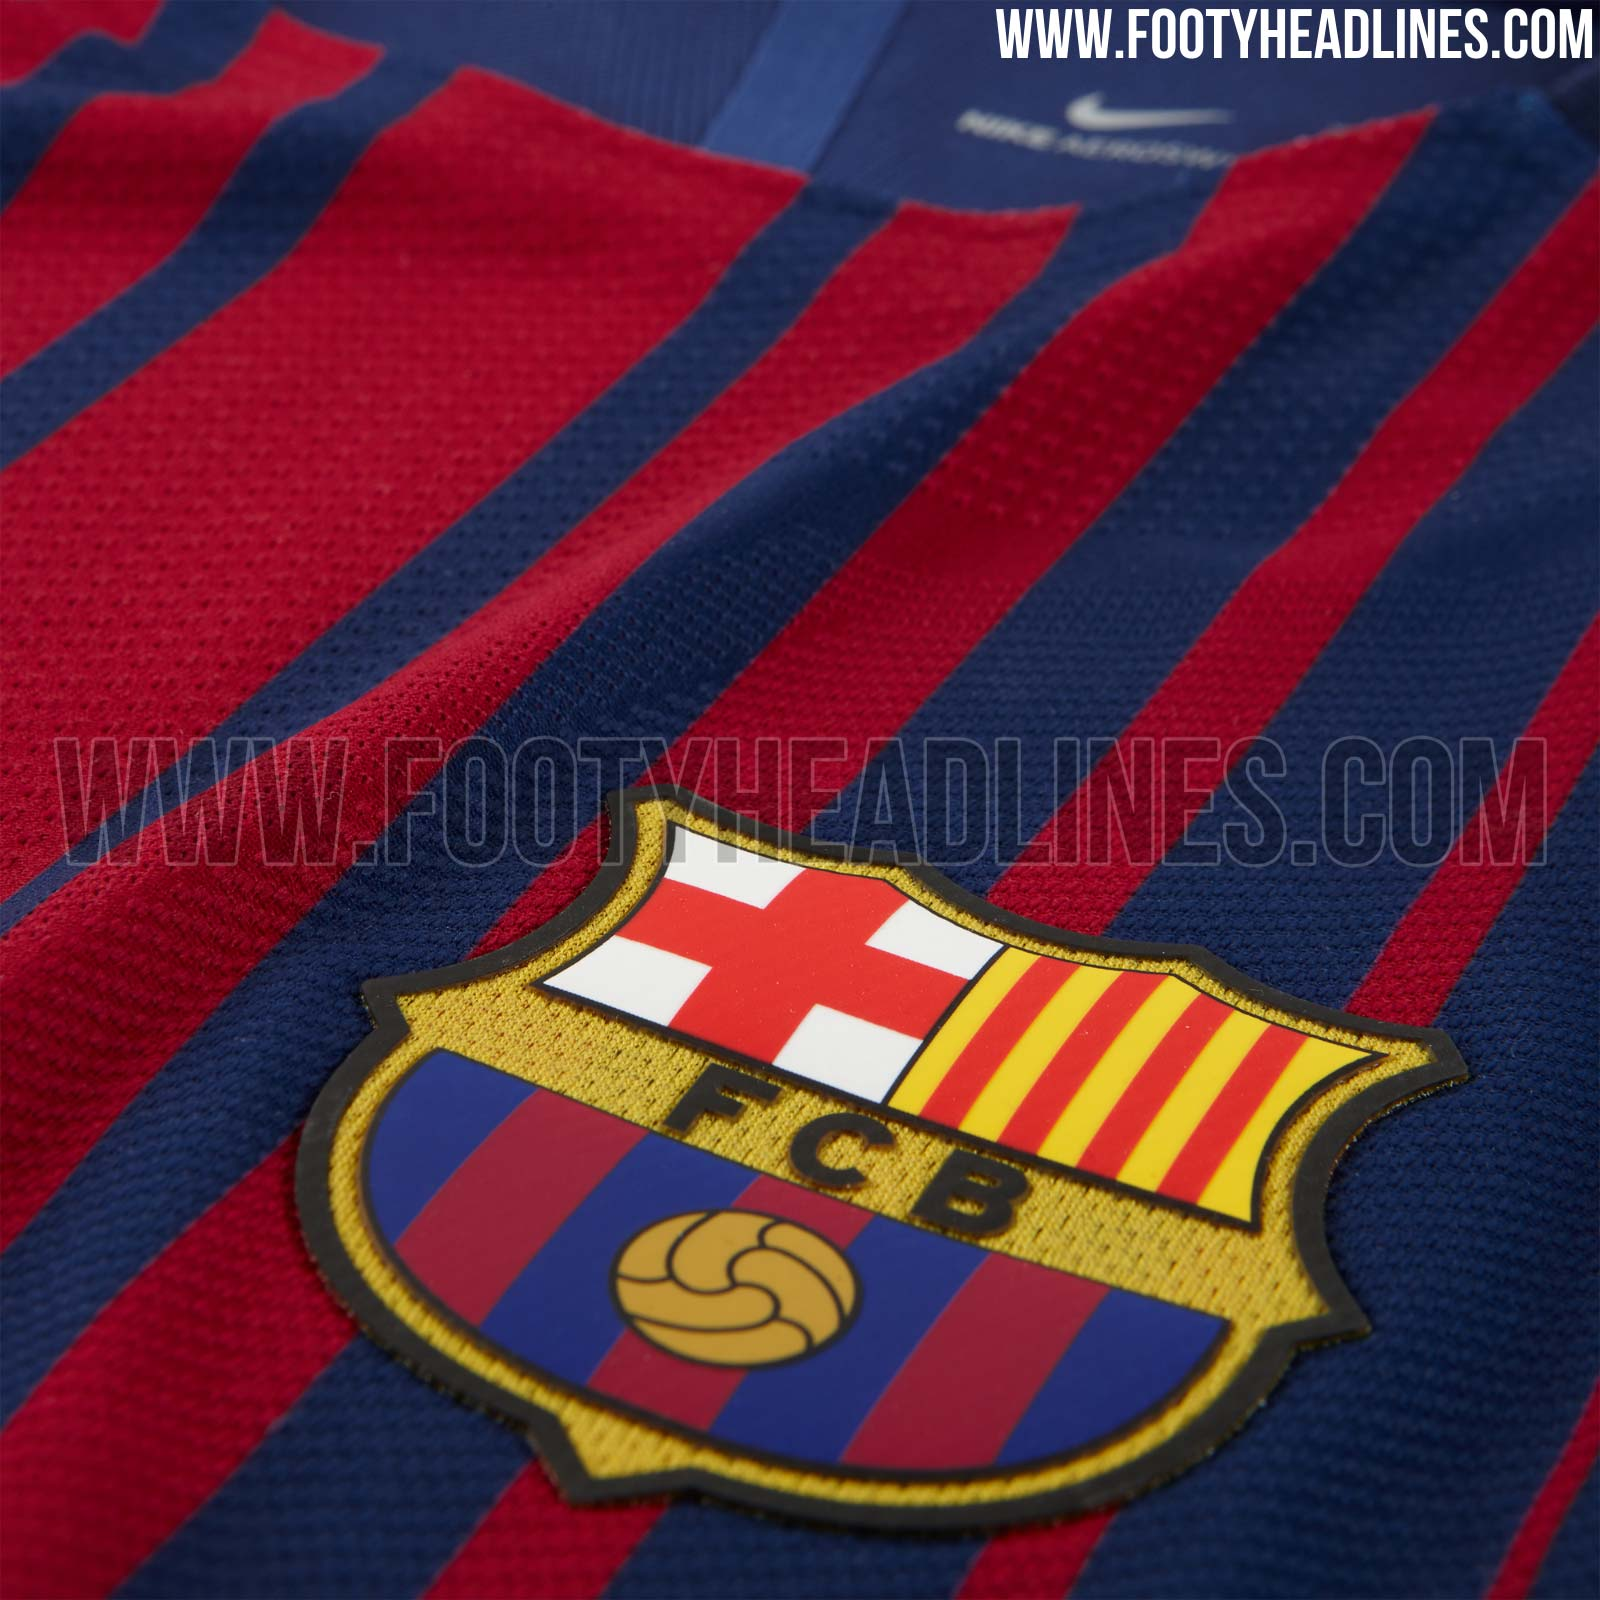 Barcelona 17 18 Home Kit Released   Footy Headlines 1600x1600